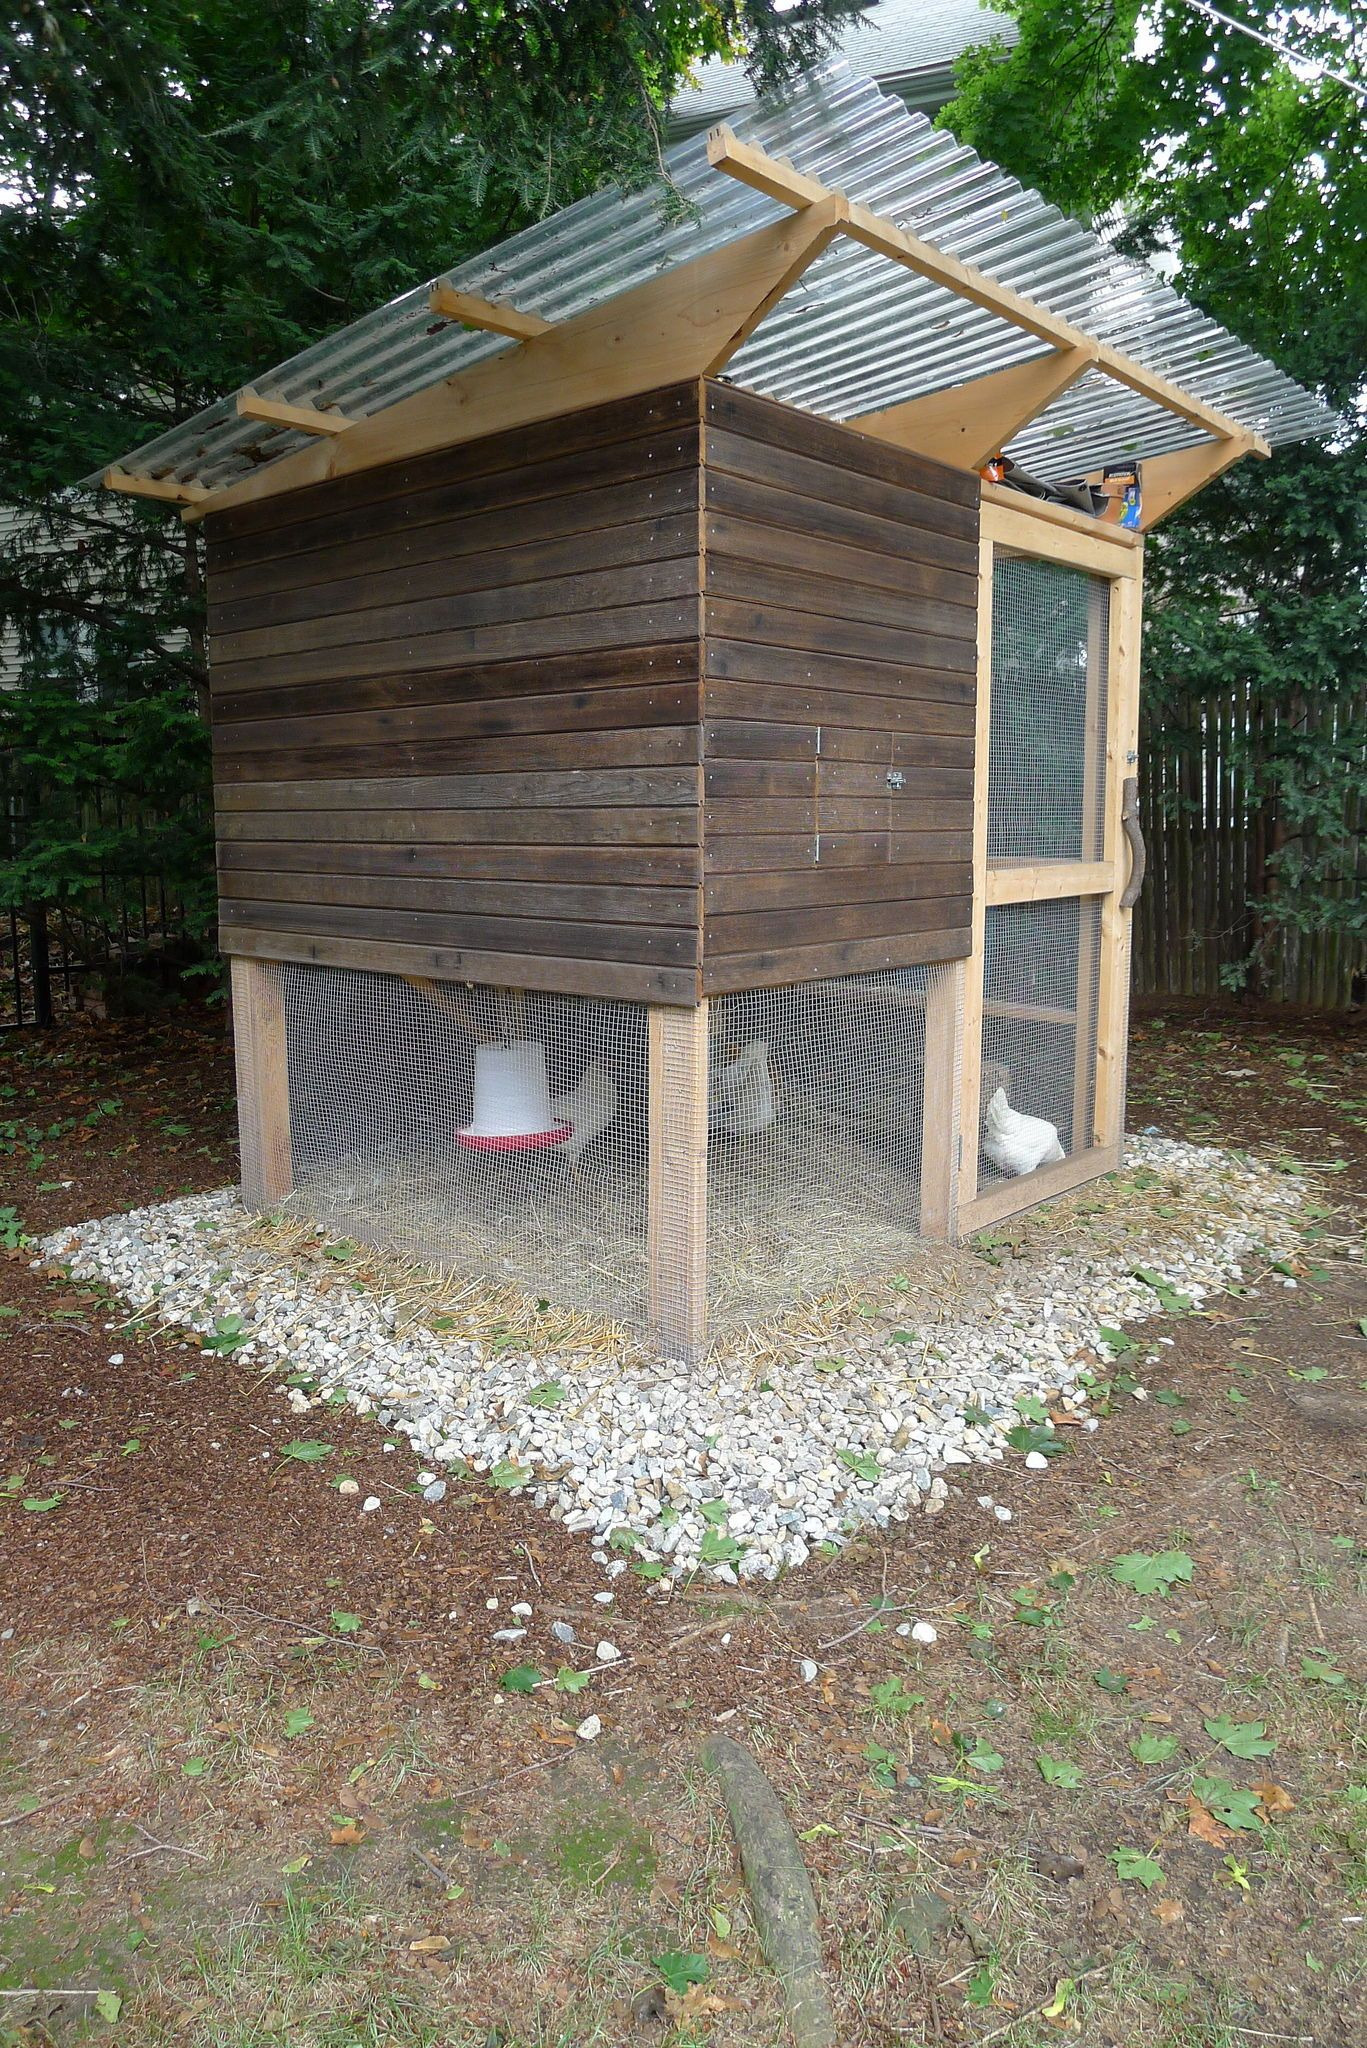 Easy Chicken House Plans Lovely 5 Simple Steps On How to Build A Backyard Chicken Coop